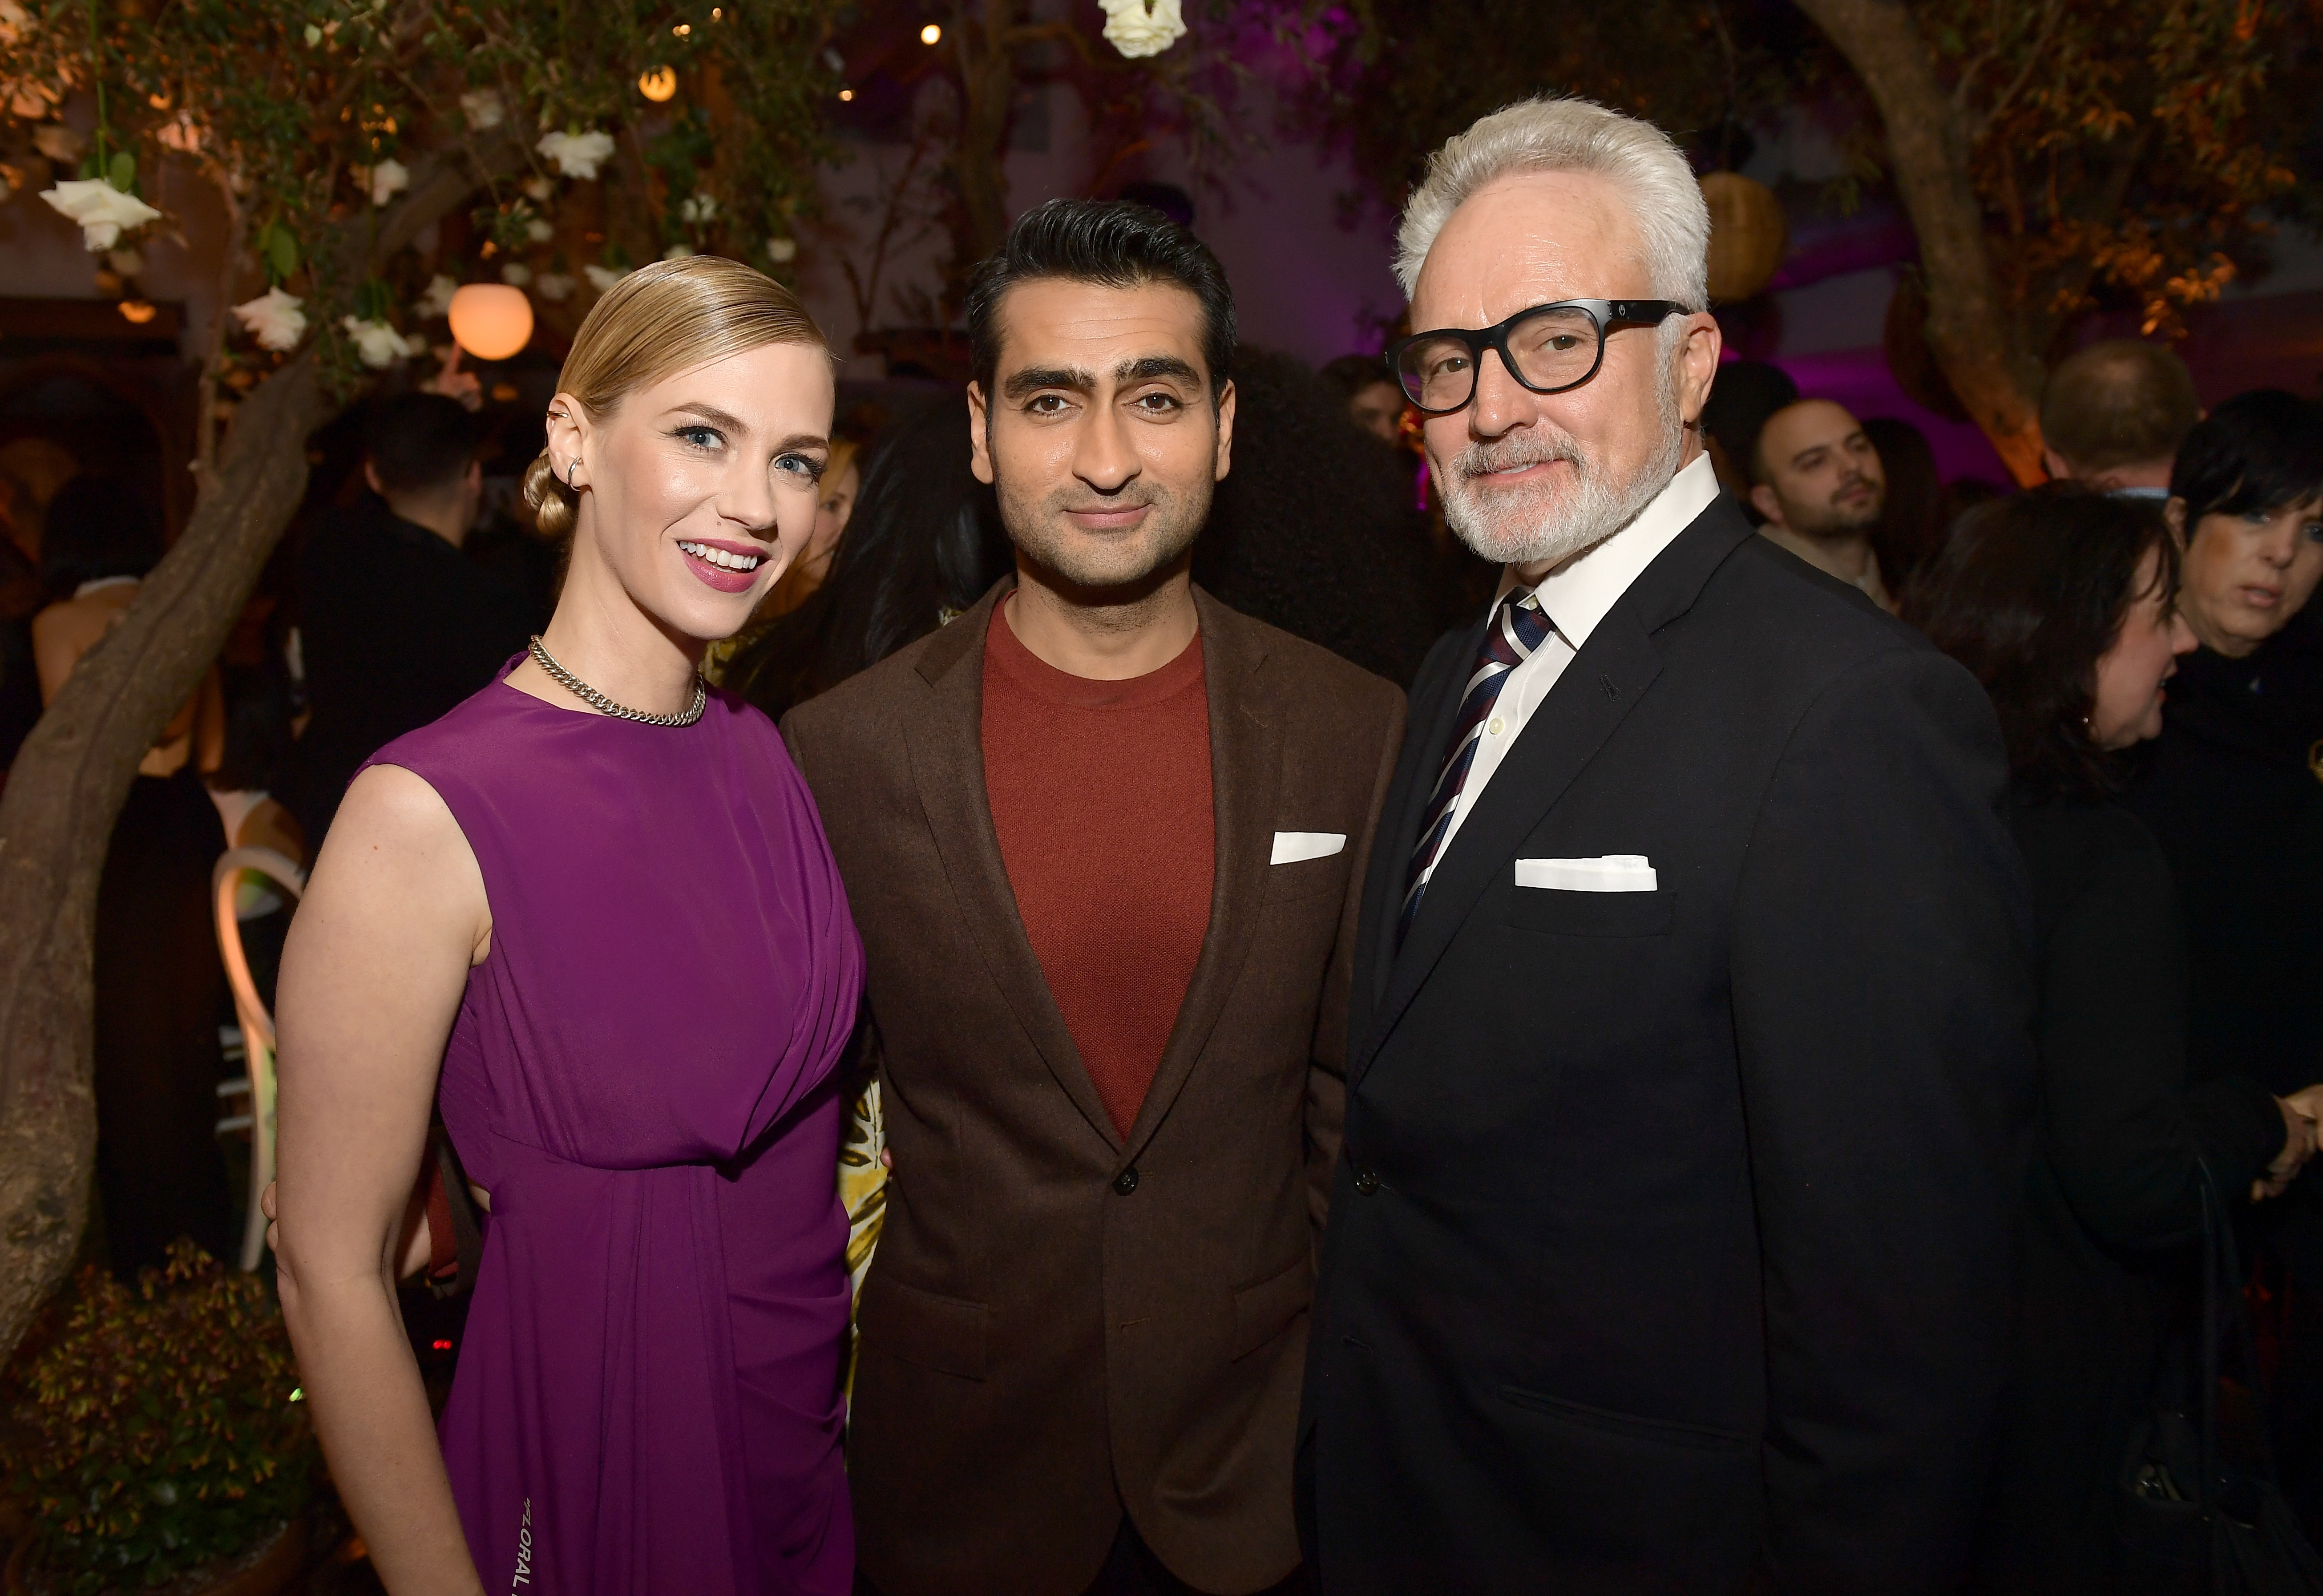 January Jones, Kumail Nanjiani, and Bradley Whitford attend Vanity Fair and Lancome Paris Toast Women in Hollywood, hosted by Radhika Jones and Ava DuVernay, on March 1, 2018 in West Hollywood, California. (Photo by Matt Winkelmeyer/Getty Images for Vanity Fair) *** Local Caption *** January Jones;Kumail Nanjiani;Bradley Whitford